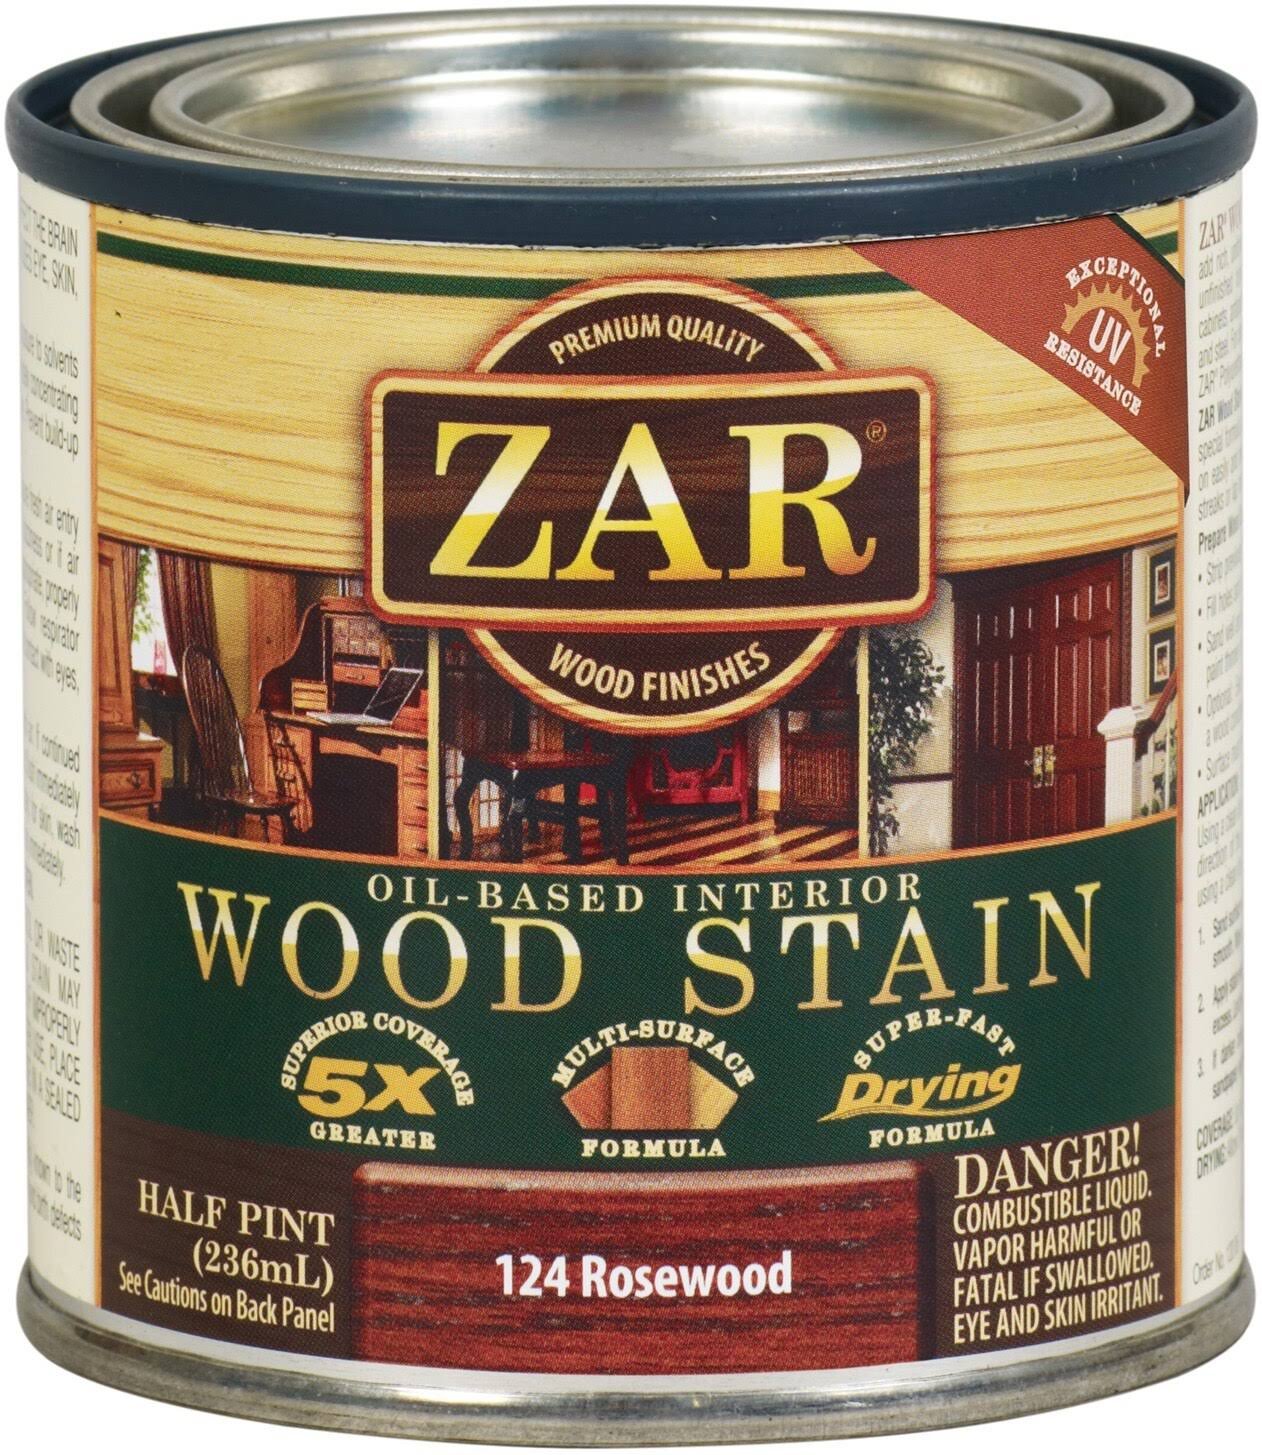 Zar United Gilsonite Half Pint Rosewood Oil Based Wood Stain - Rosewood, 1/2pint